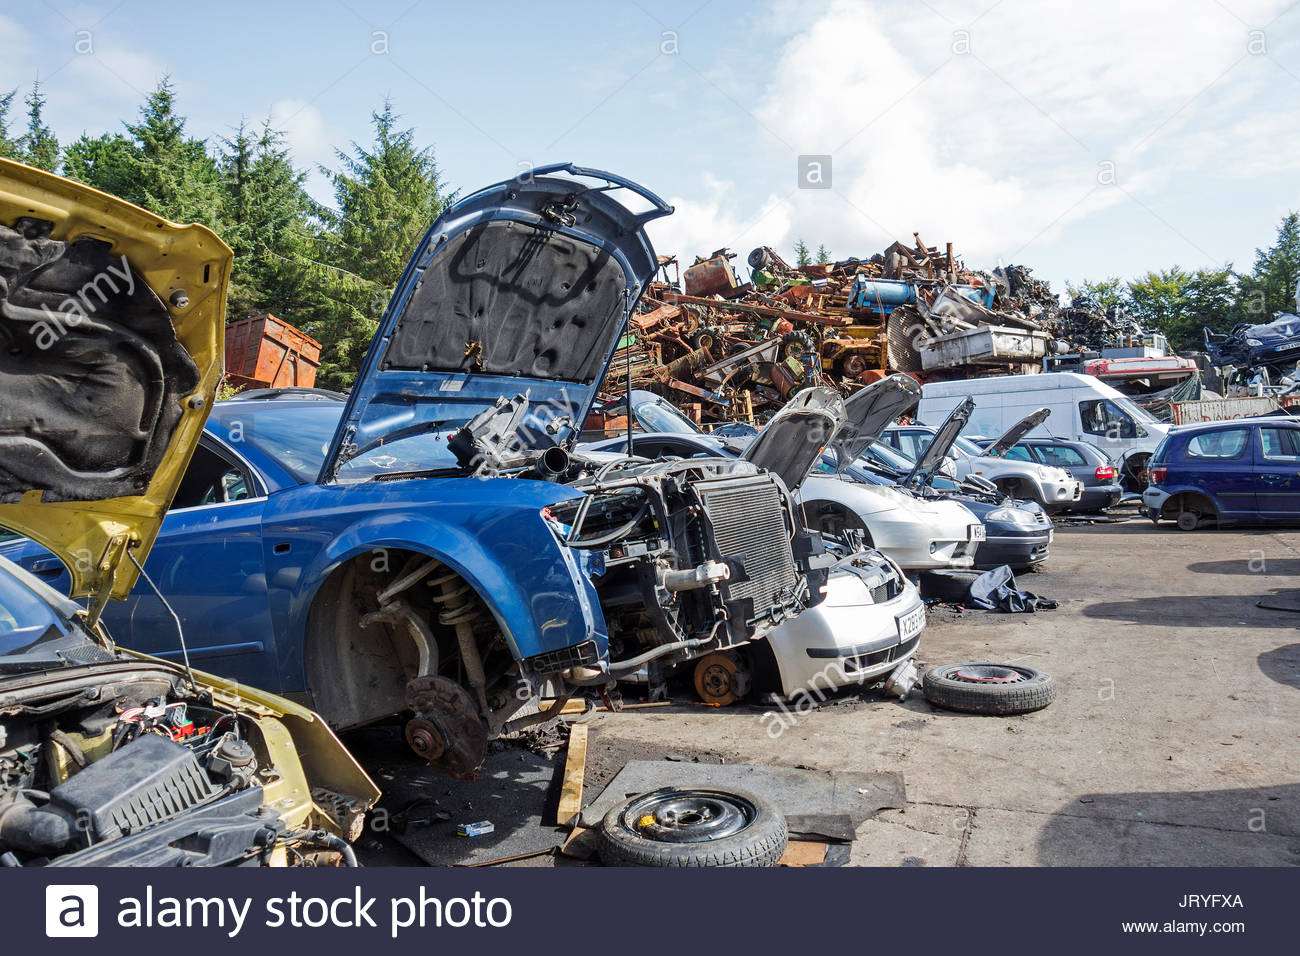 Scrap My Vehicle